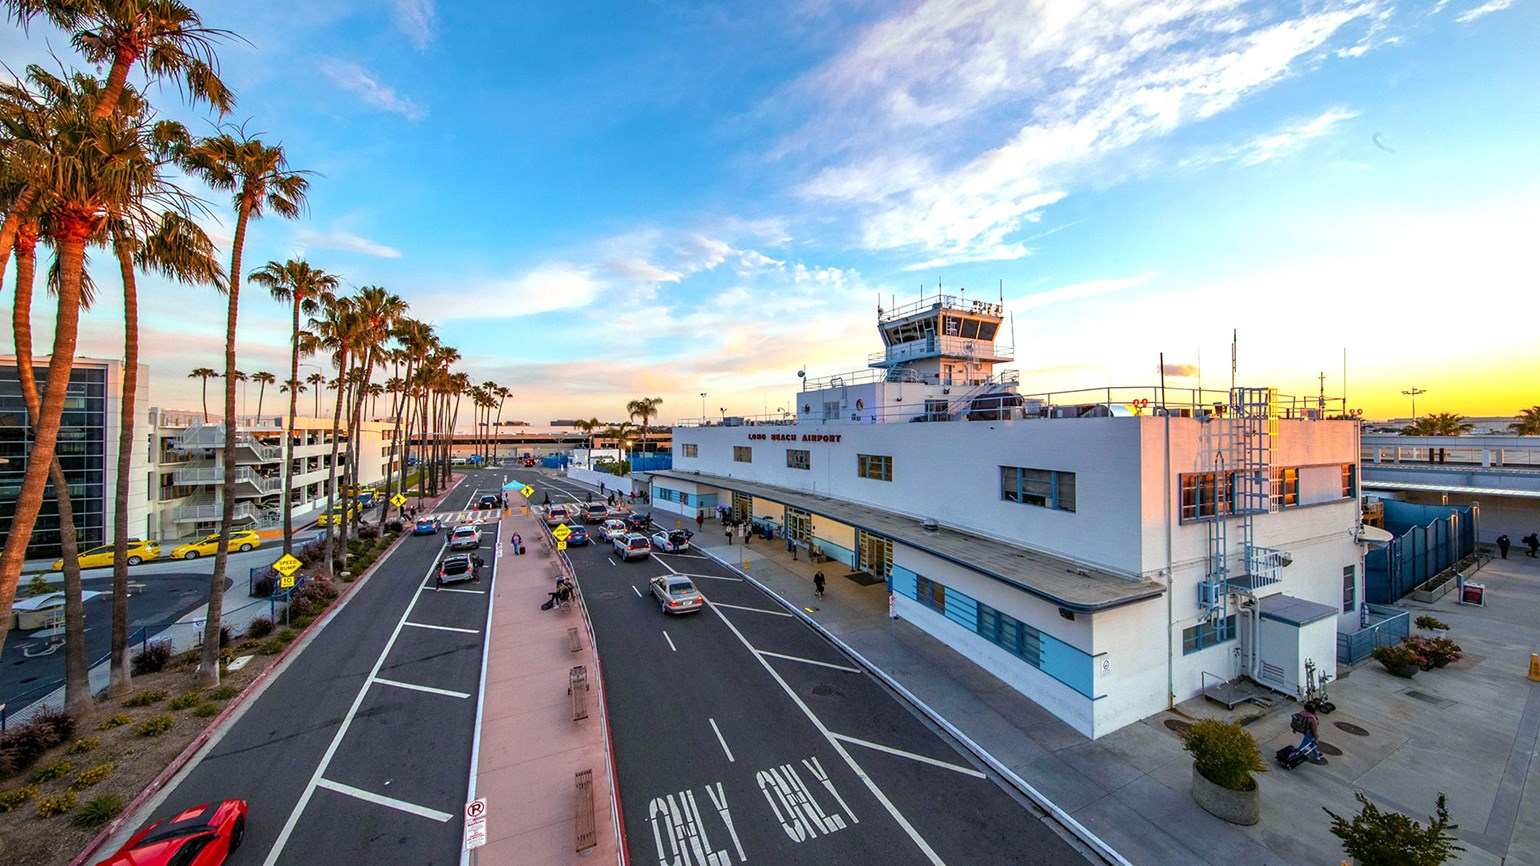 JetBlue moving out of Long Beach